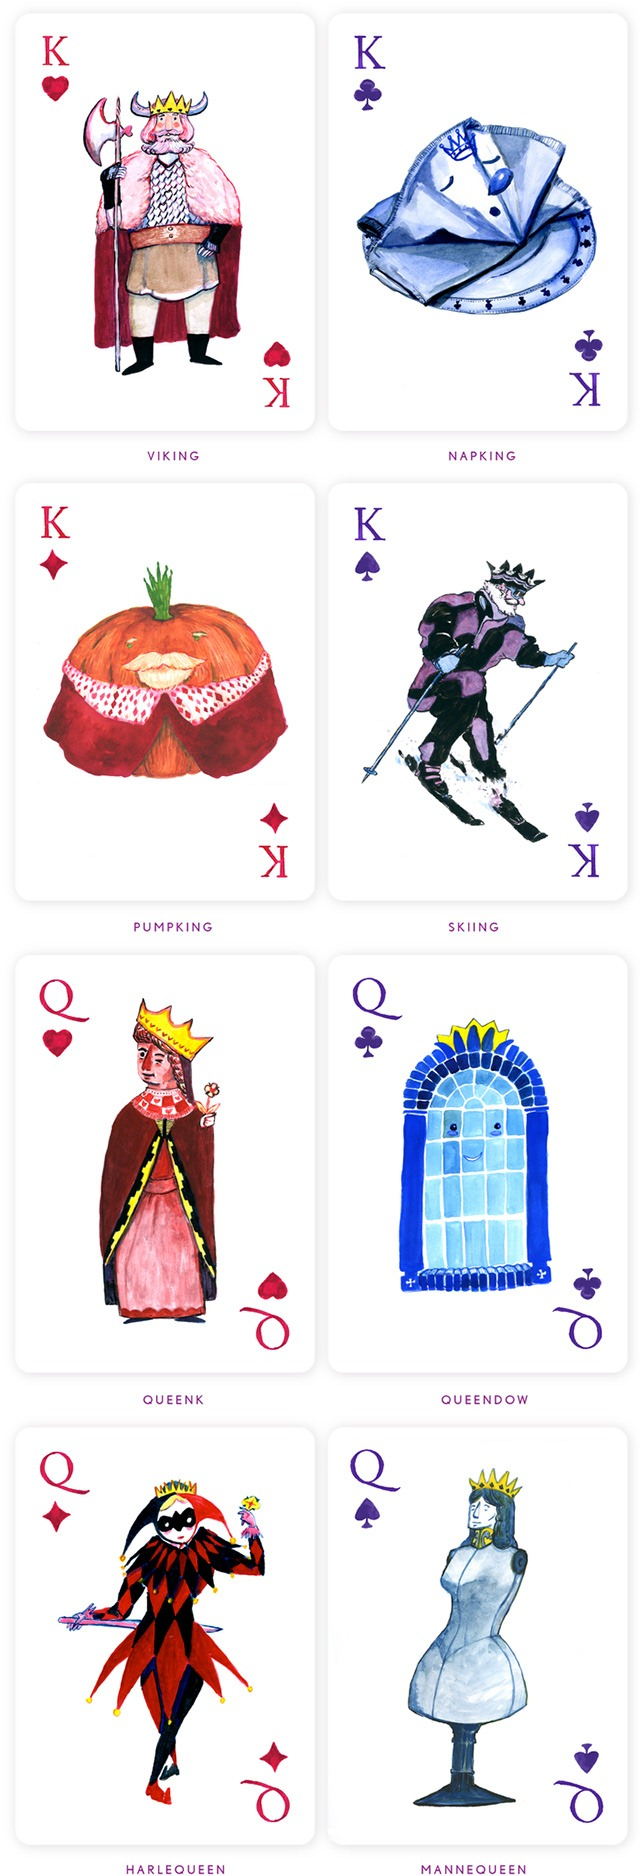 Kings-and-Queens-Punniest-Deck-of-Playing-Cards-by-by-Alberto-Rodriguez